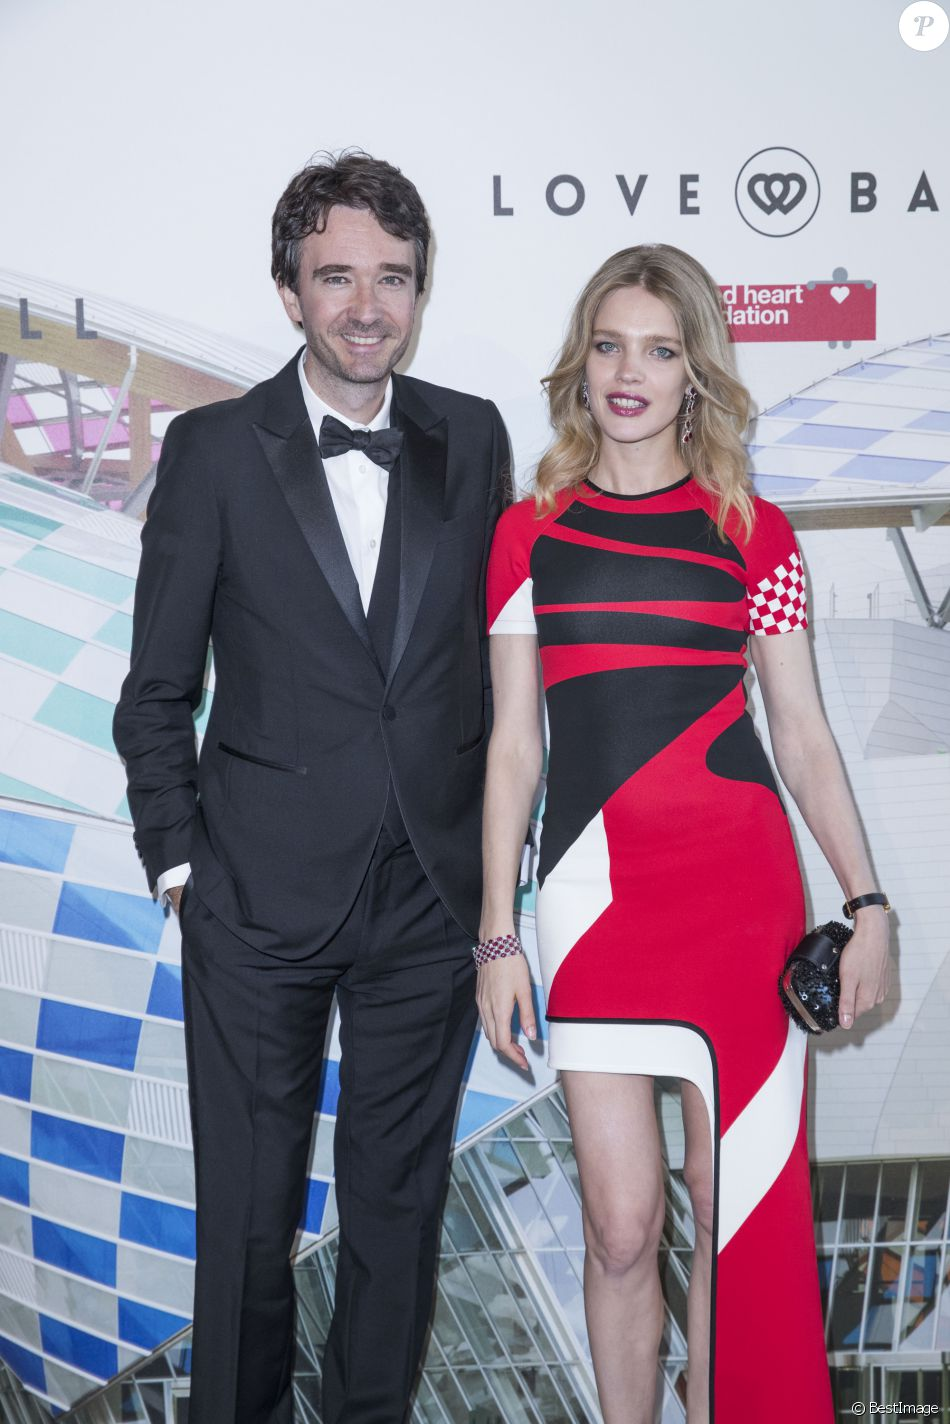 "Antoine Arnault et sa compagne Natalia Vodianova - Photocall de la soirée ""The Art of Giving"" Love Ball à la Fondation Louis Vuitton à Paris le 6 juillet 2016. © Olivier Borde / Bestimage  'The Art of Giving' Love Ball Naked Heart foundation : Photo Call as part of Paris Fashion Week on July 6, 2016 in Paris, France.06/07/2016 - Paris"